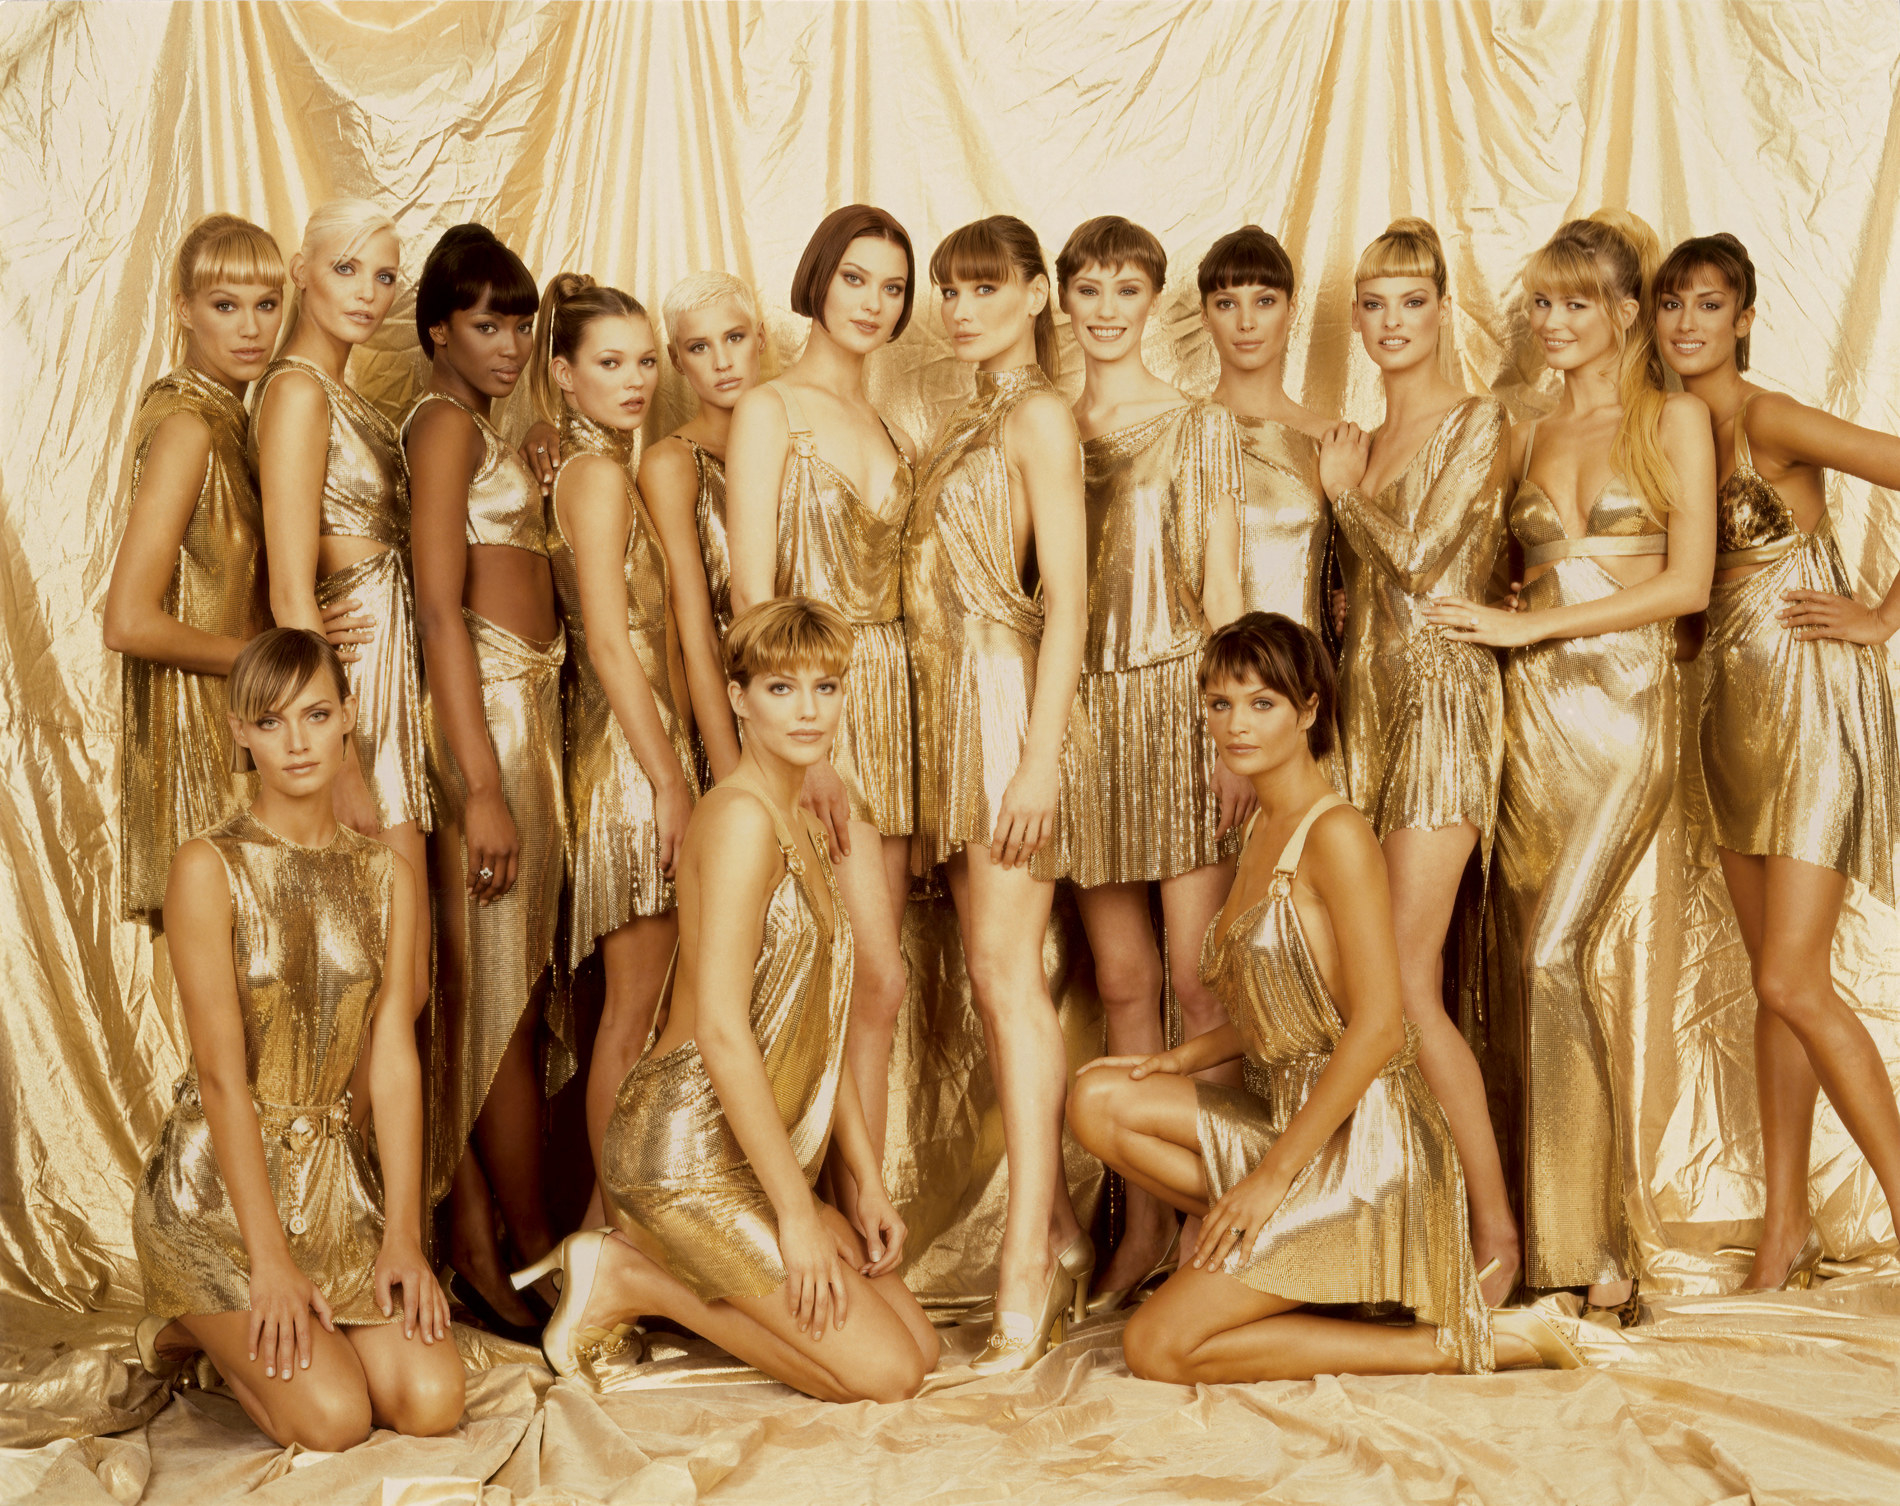 A large group of models in gold outfits on a gold background, looking at the camera